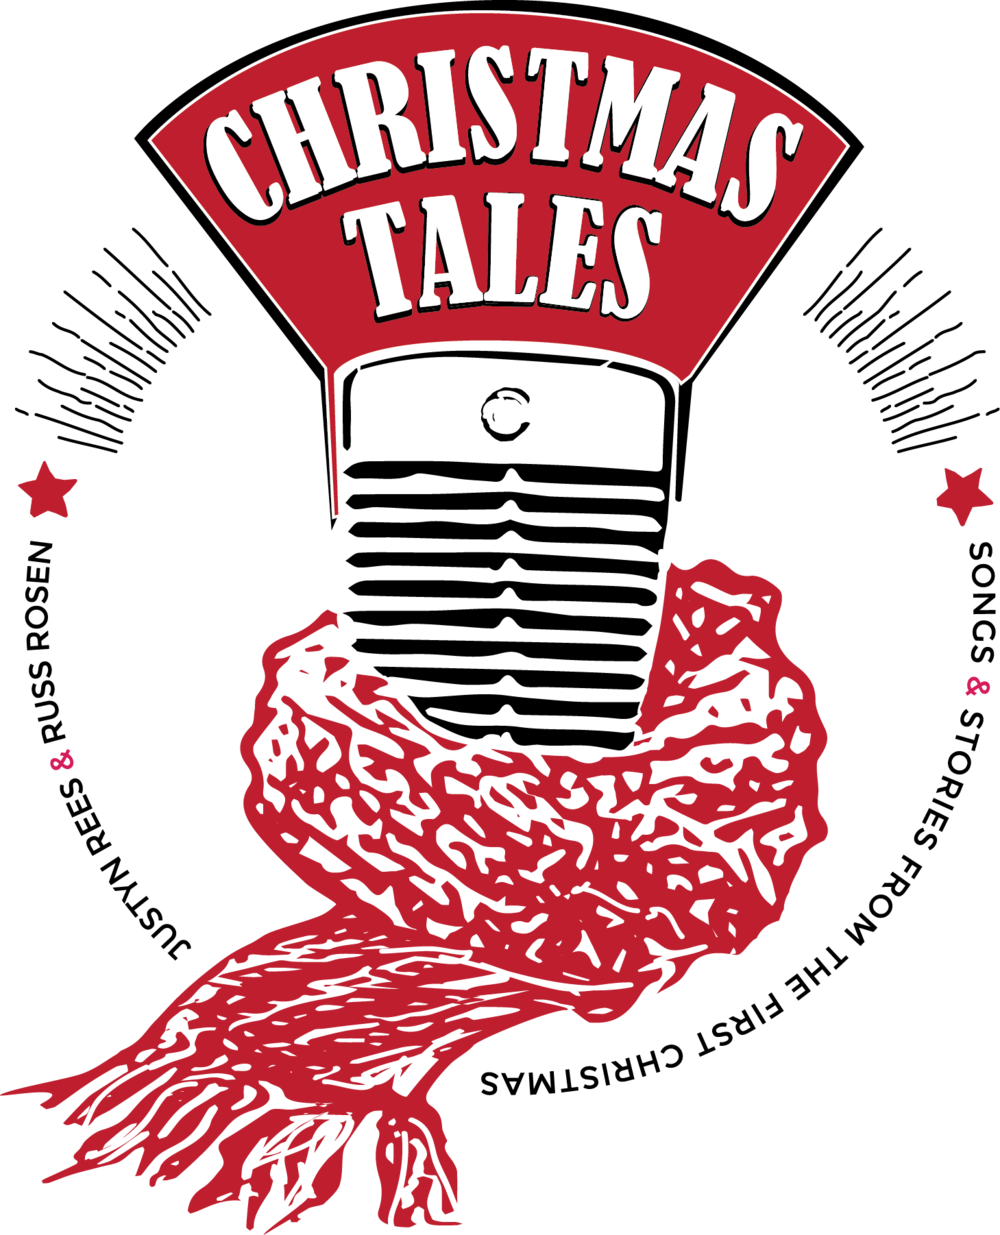 Christmas-Tales-Basic-with-text-OUTLINES.png